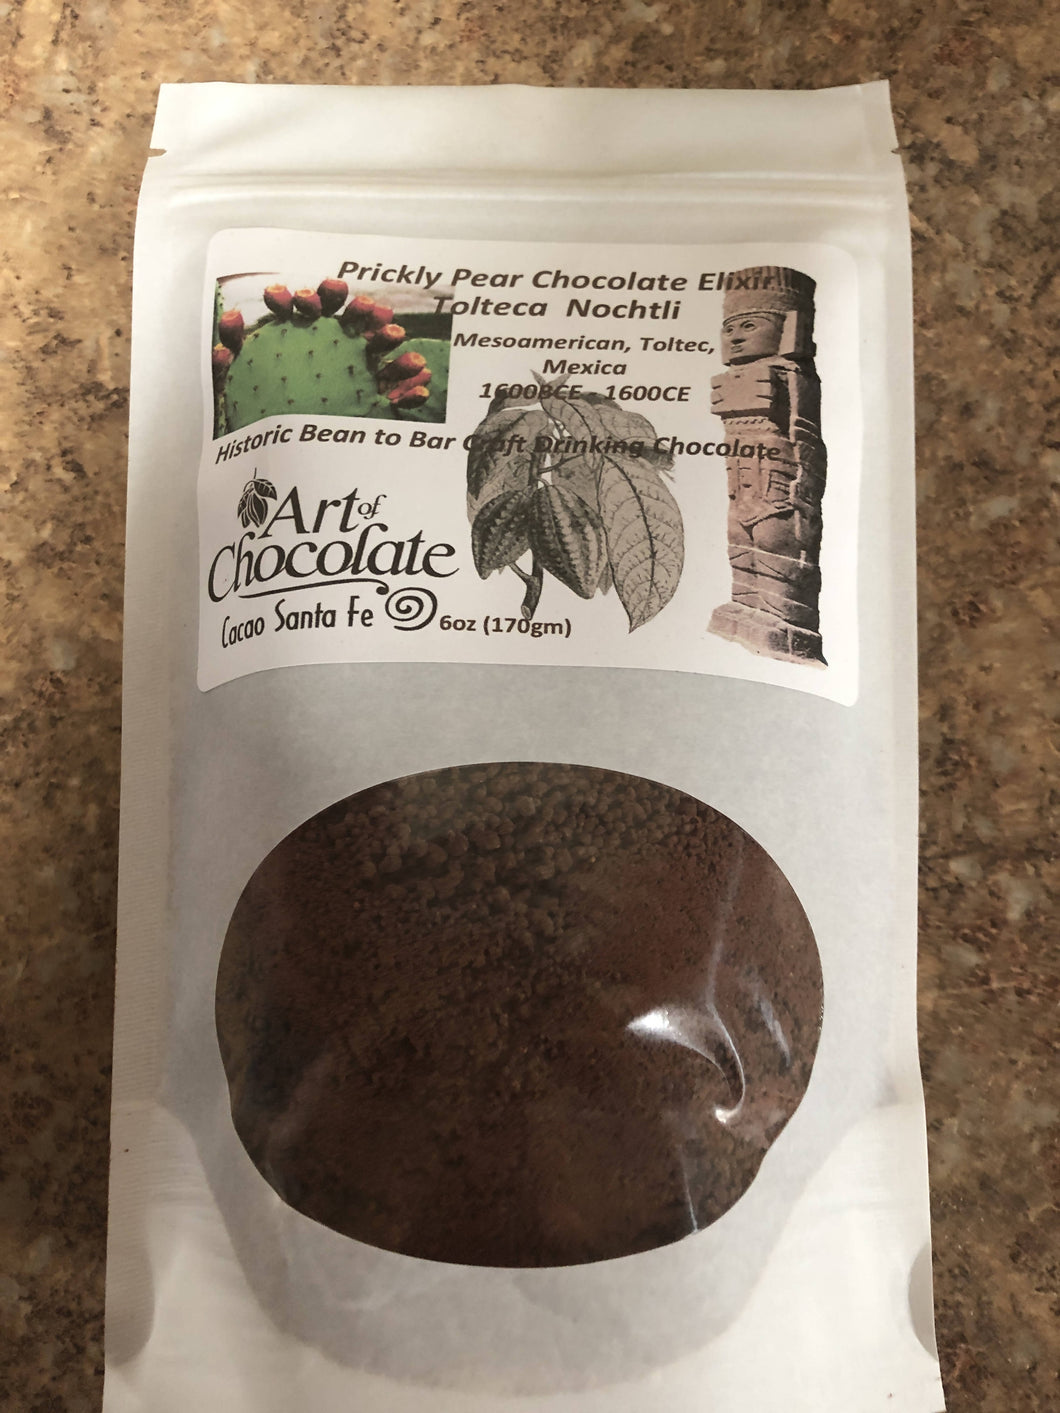 Tolteca Notchli Prickly Pear Chocolate Mix